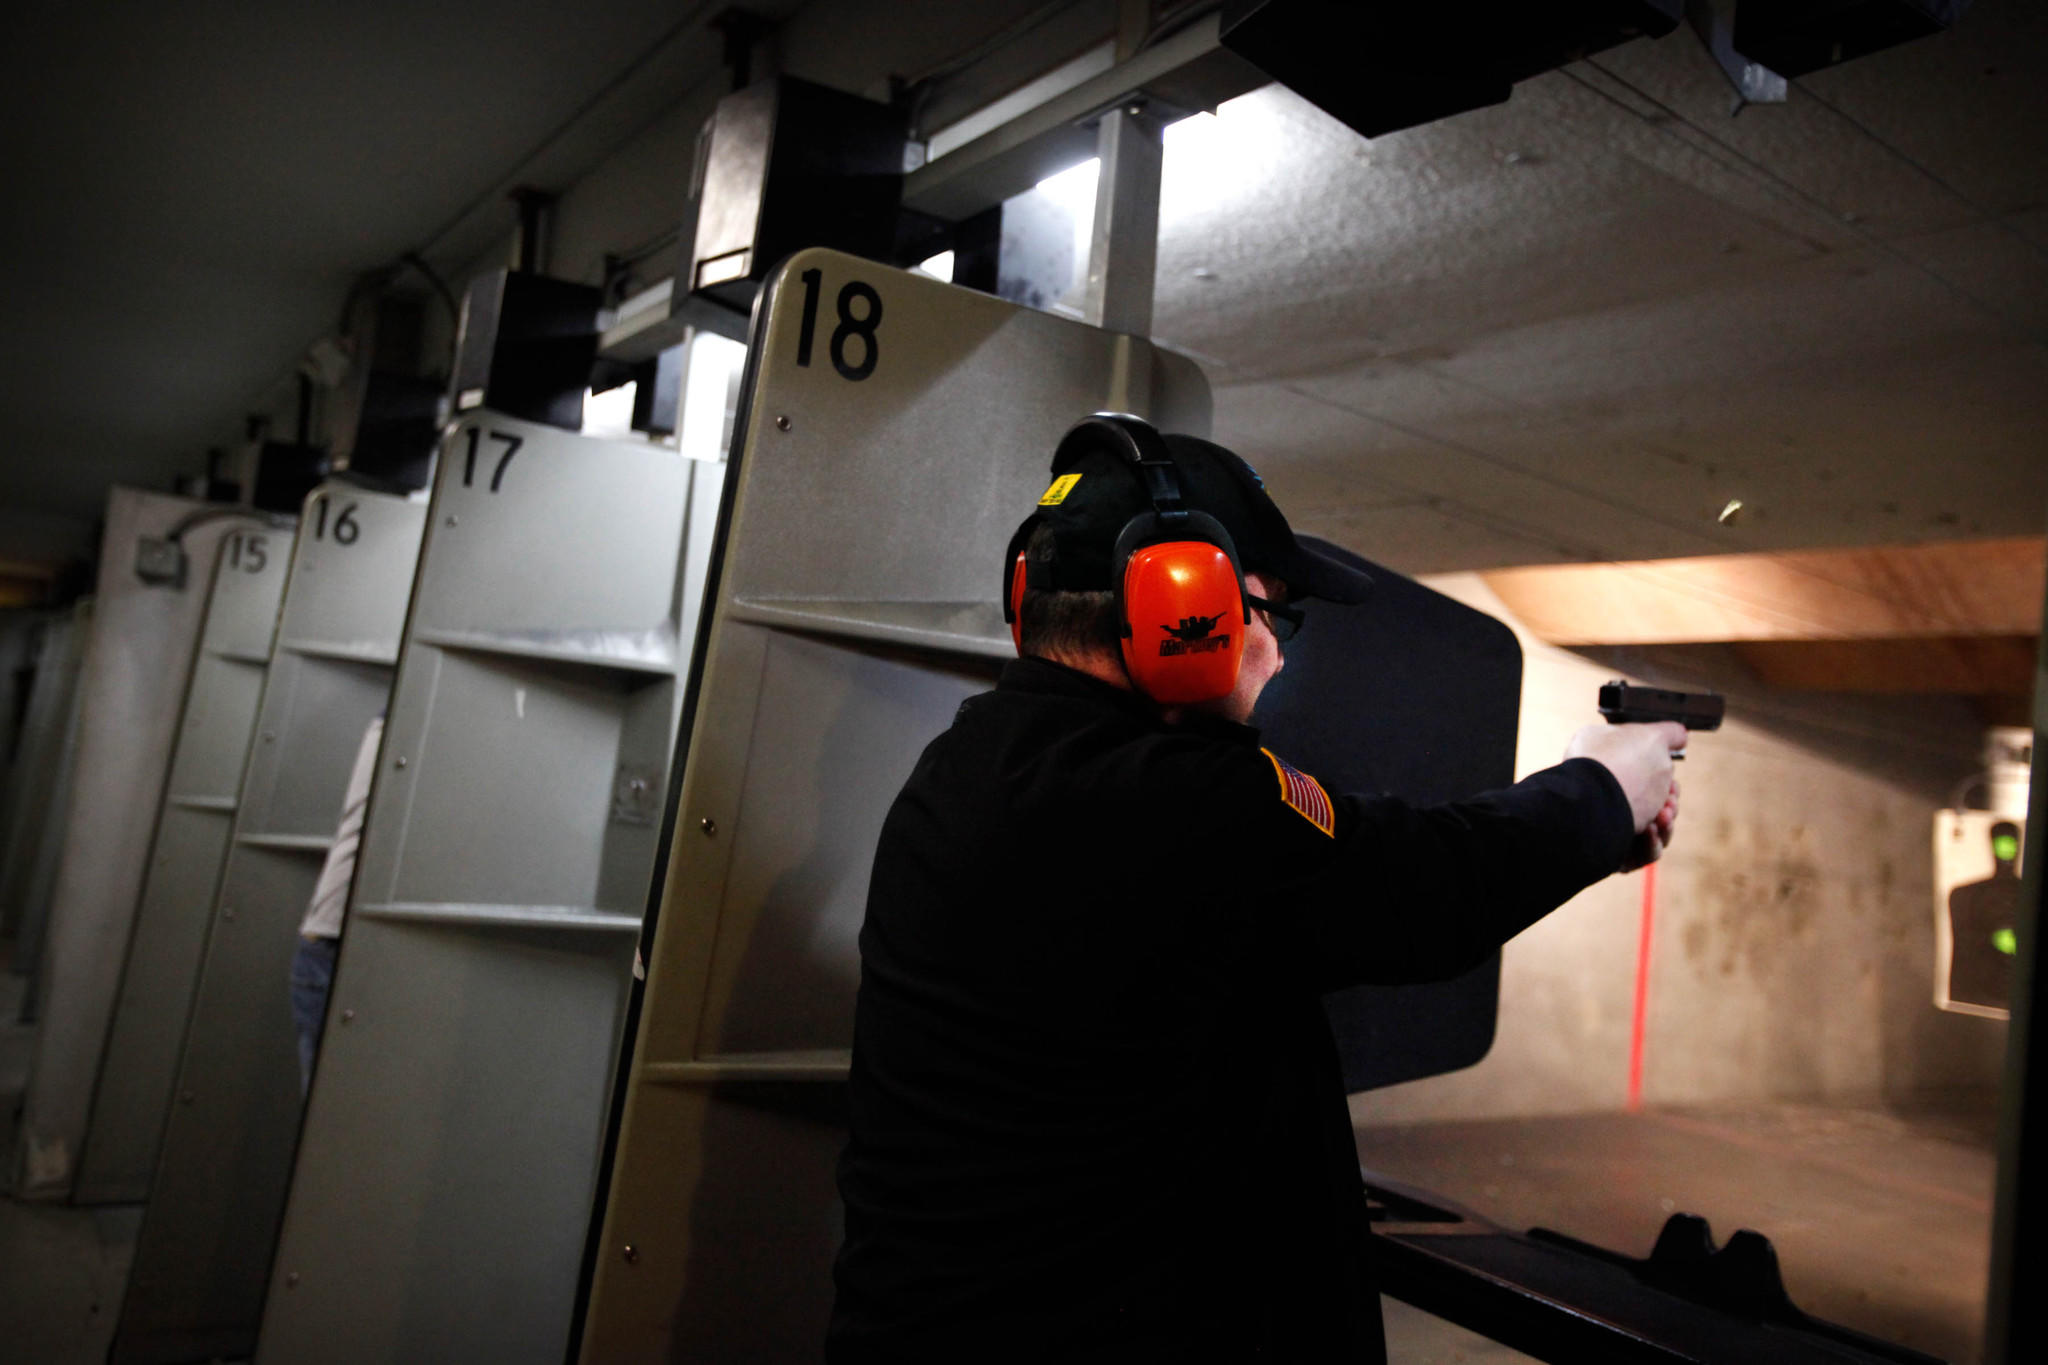 Tim Donnelly aimed a Glock 19 at a gun range last week. The weapon was borrowed from the range.